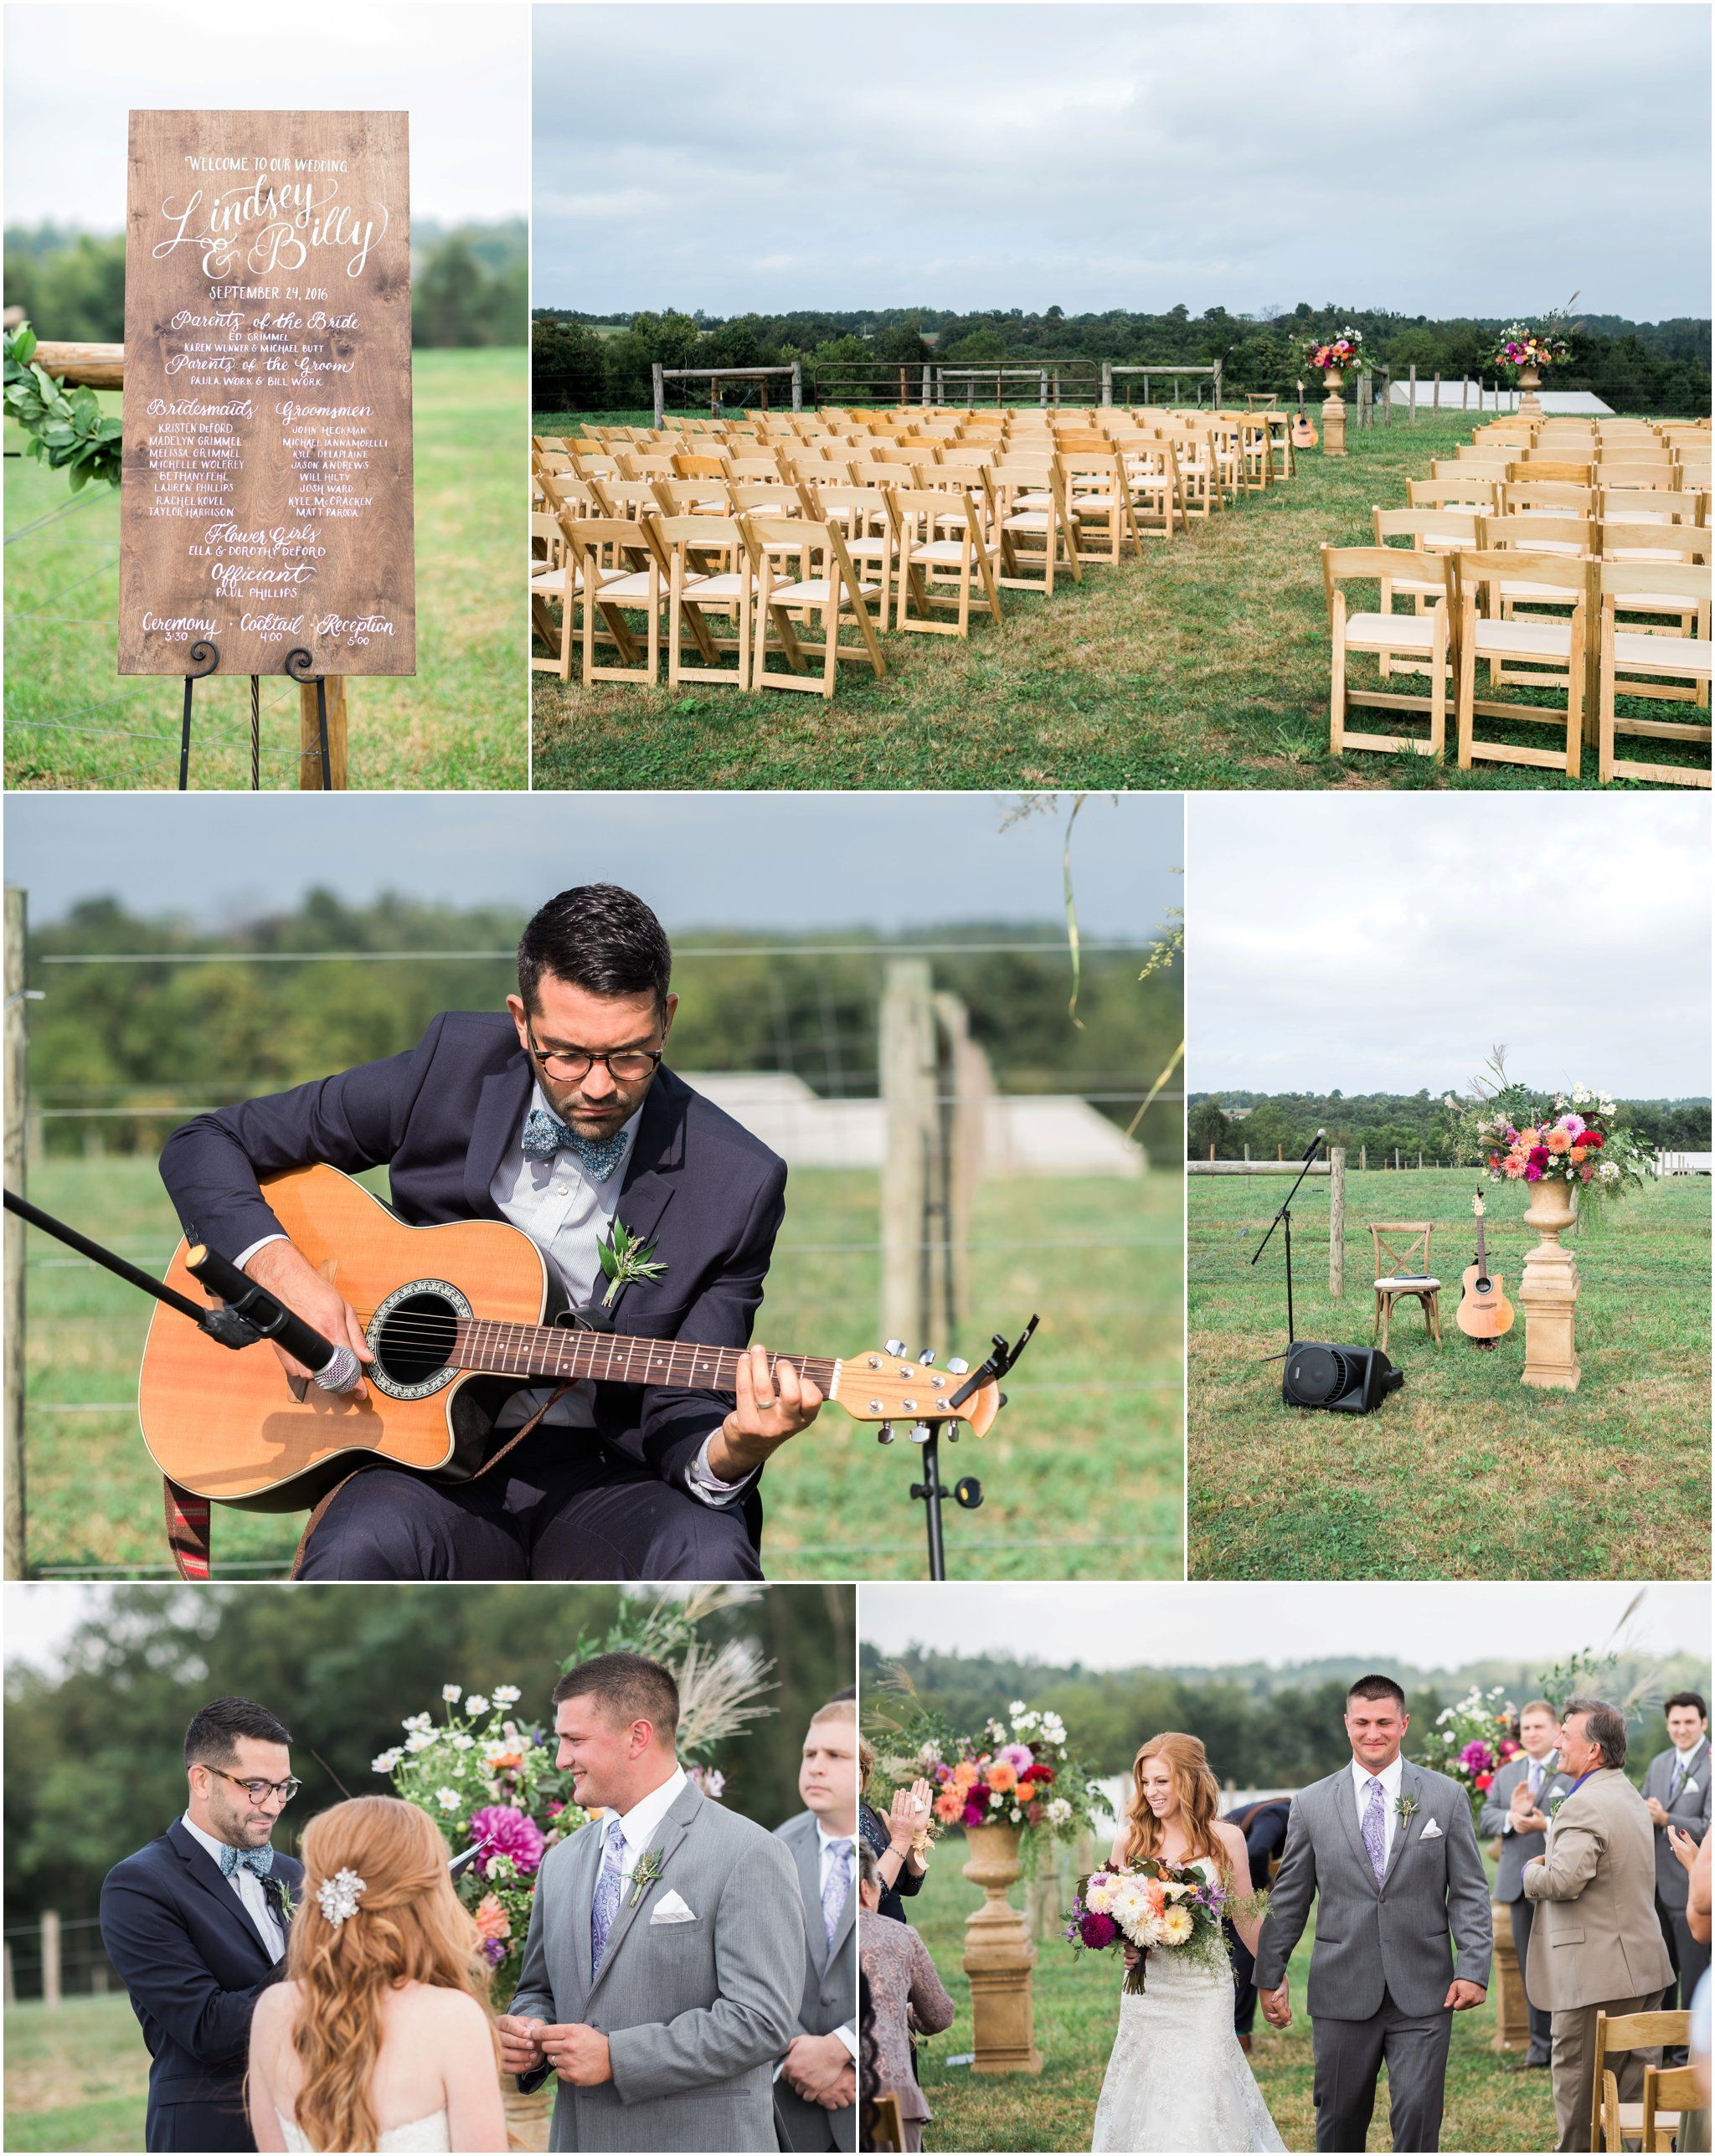 Outdoor October Wedding Day With Live Music And Ceremony Autumn Inspiration